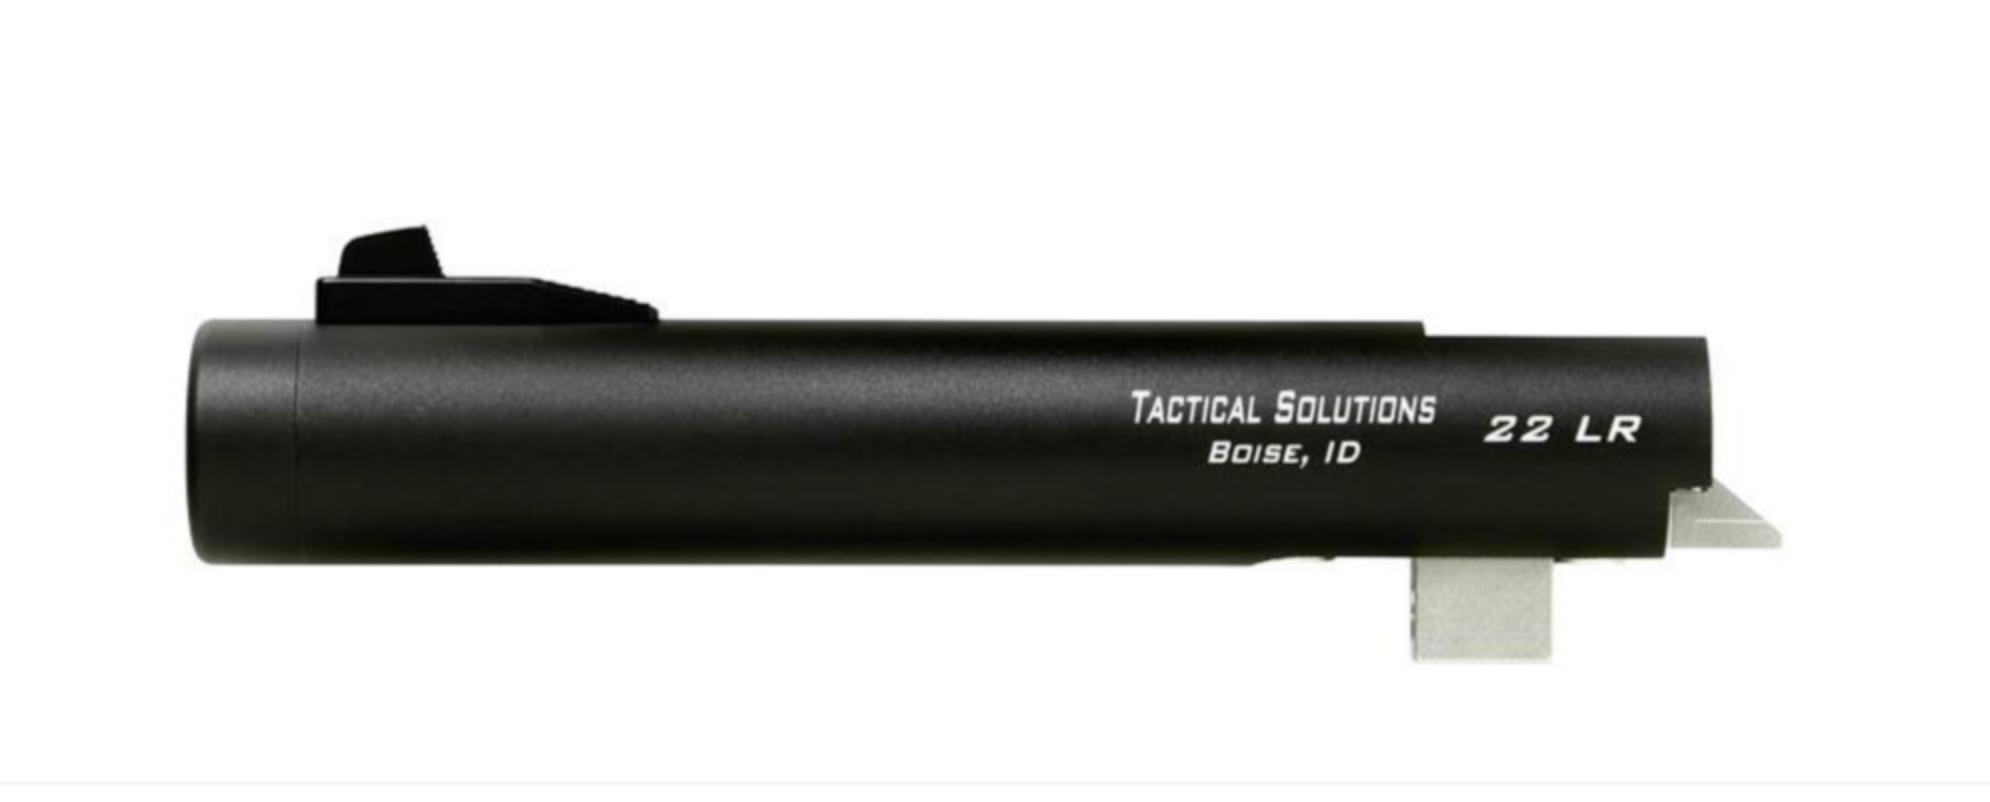 Tactical Solutions Trail-Lite Browning Buck Mark Barrel  5.5